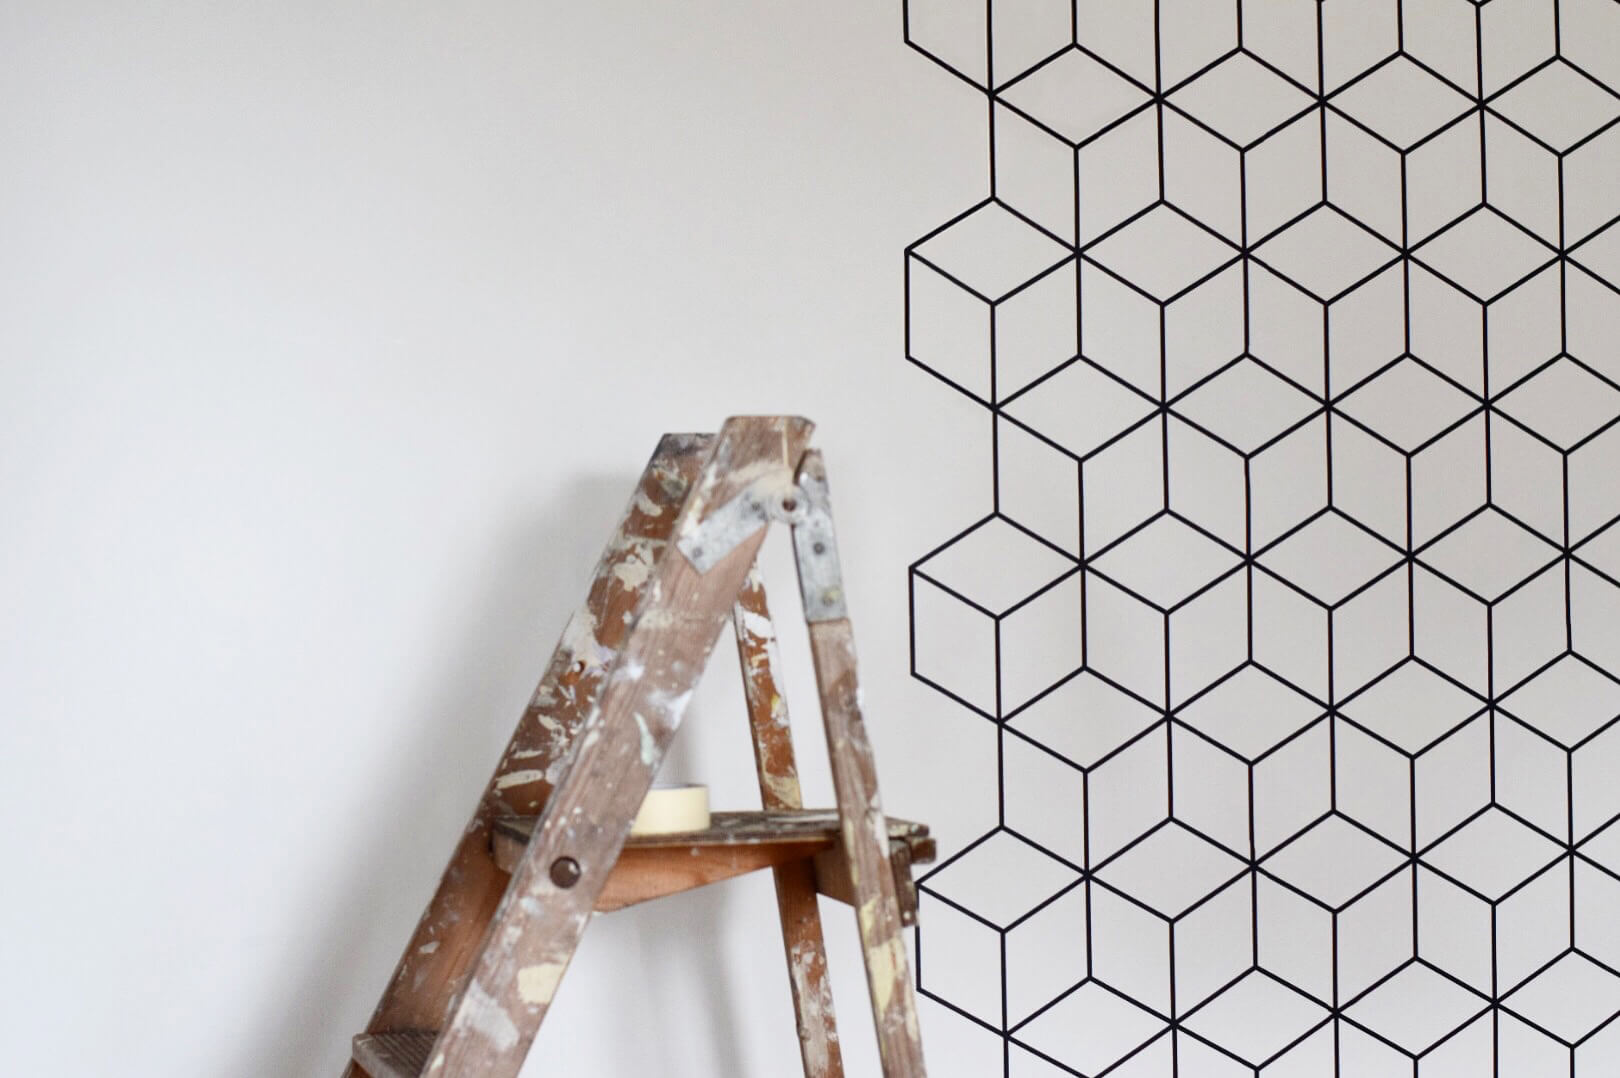 Buy temporary wallpaper with a geometric pattern / Grillo Designs www.grillo-designs.com